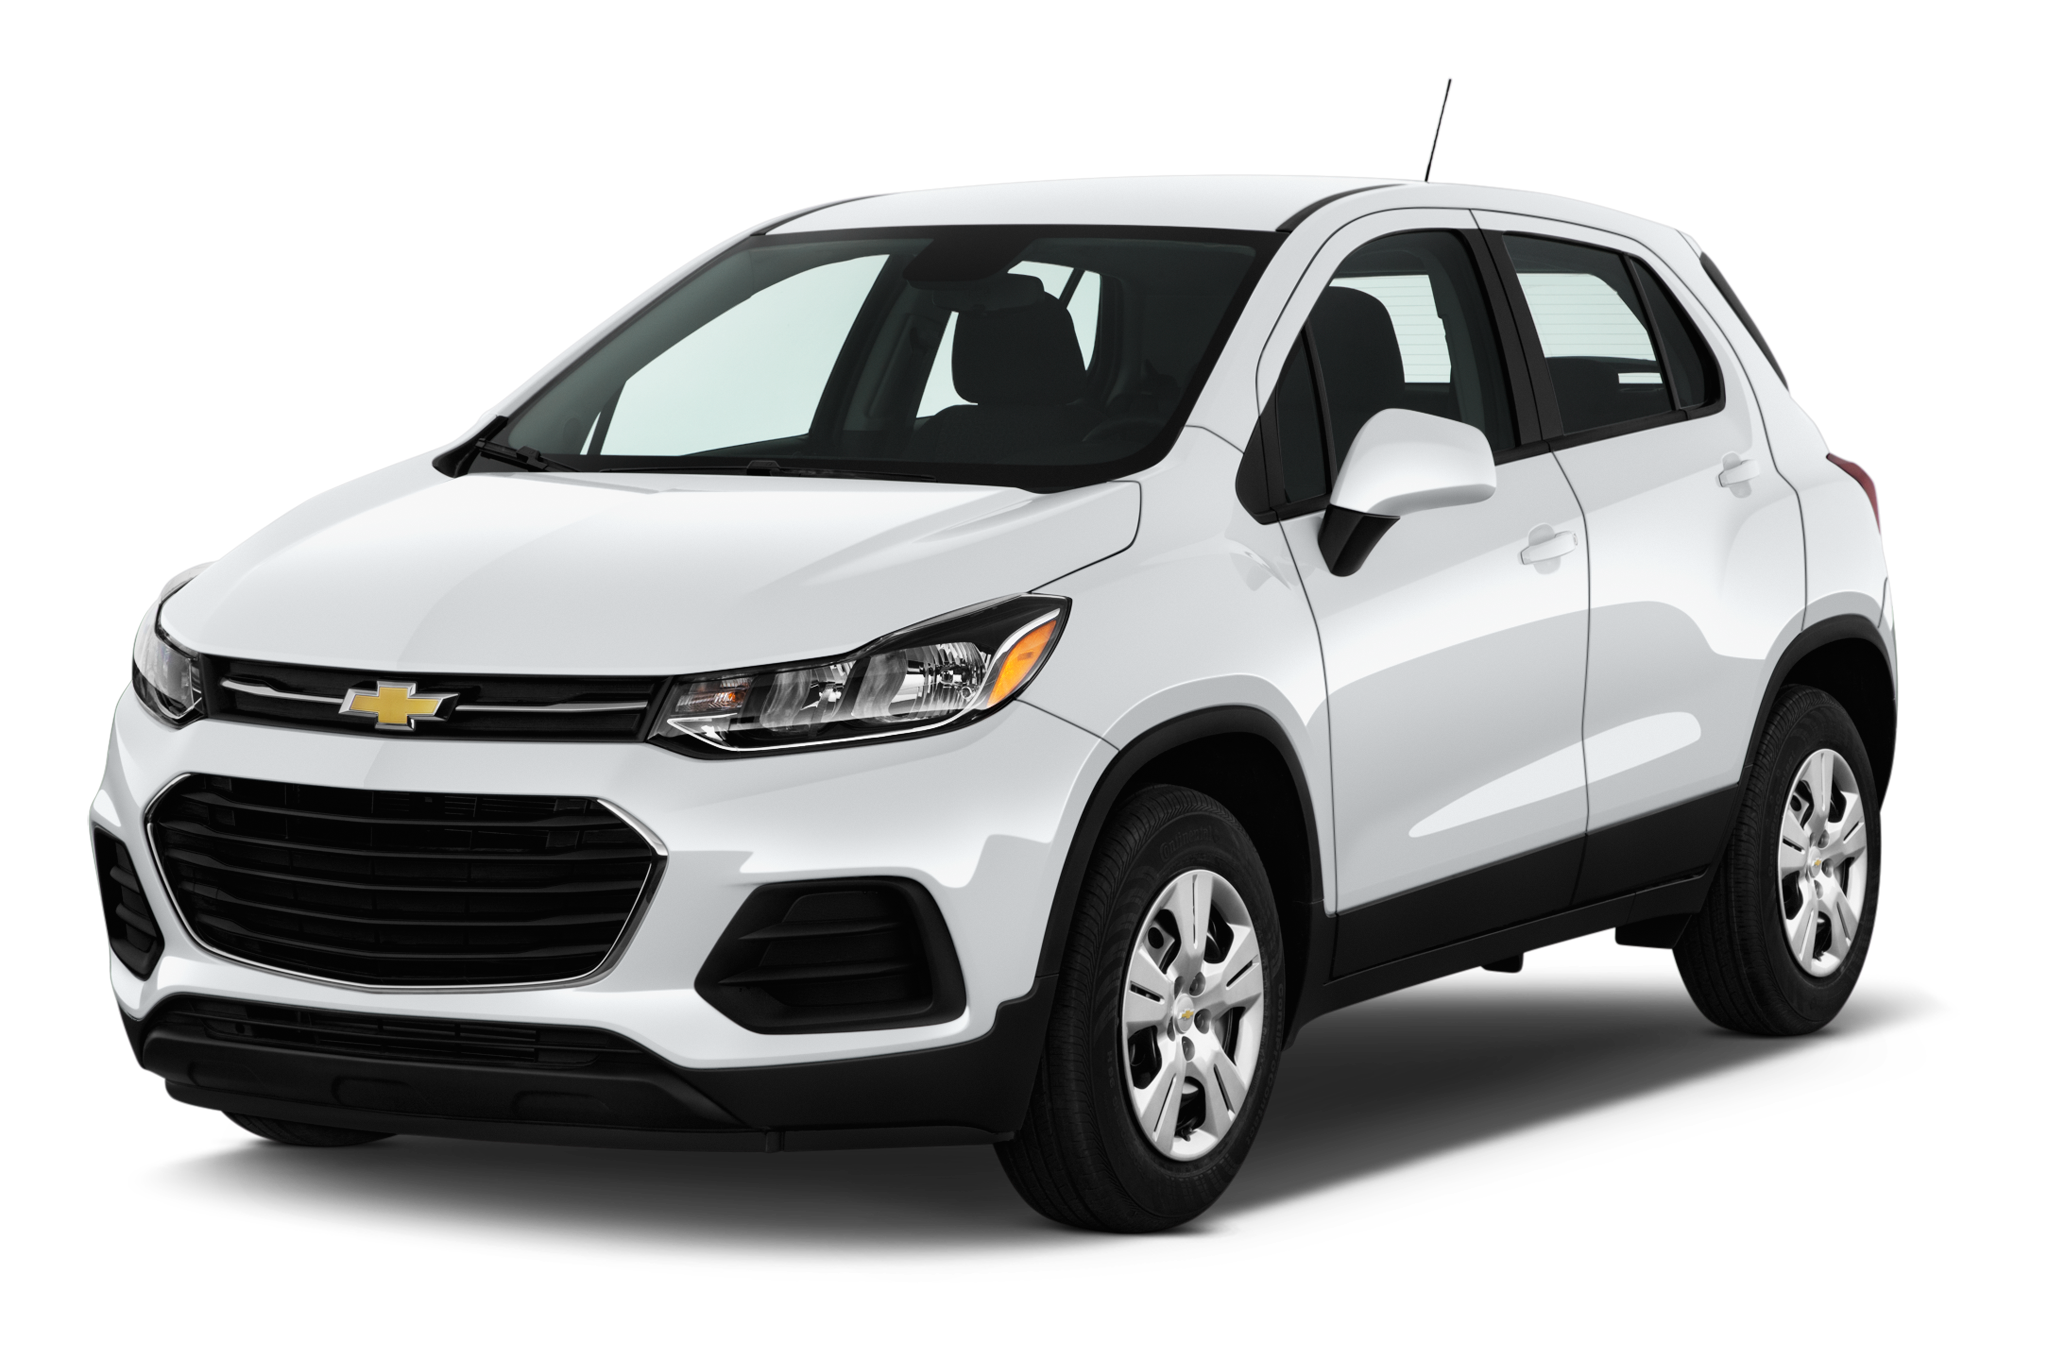 2017 chevrolet trax gets a fresh face new safety gear. Black Bedroom Furniture Sets. Home Design Ideas